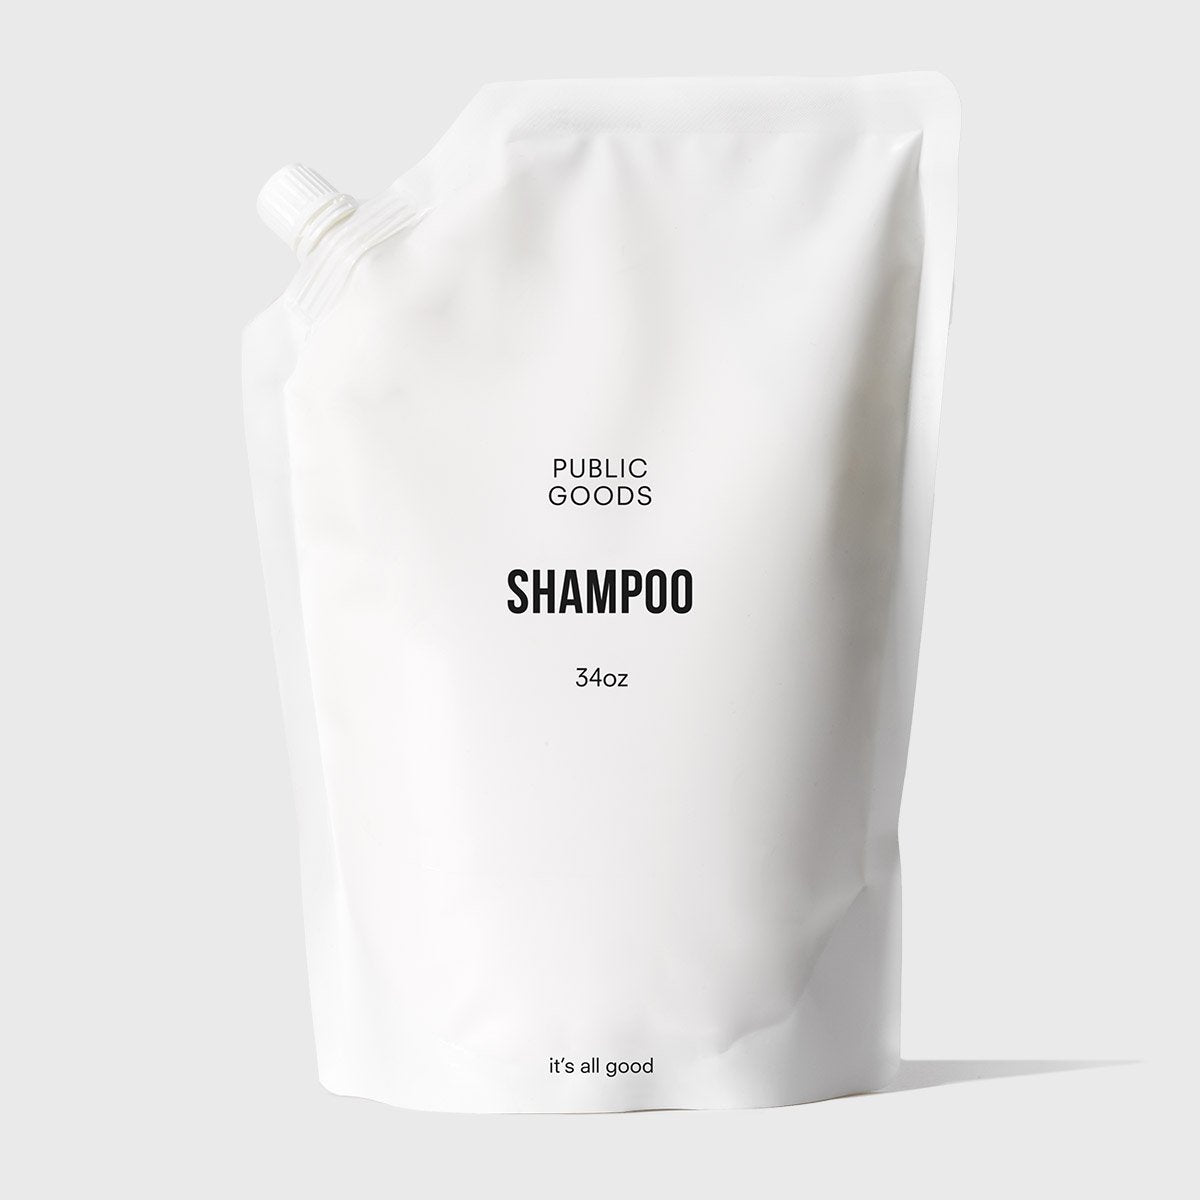 Shampoo Refill 34 fl oz (Case of 6)